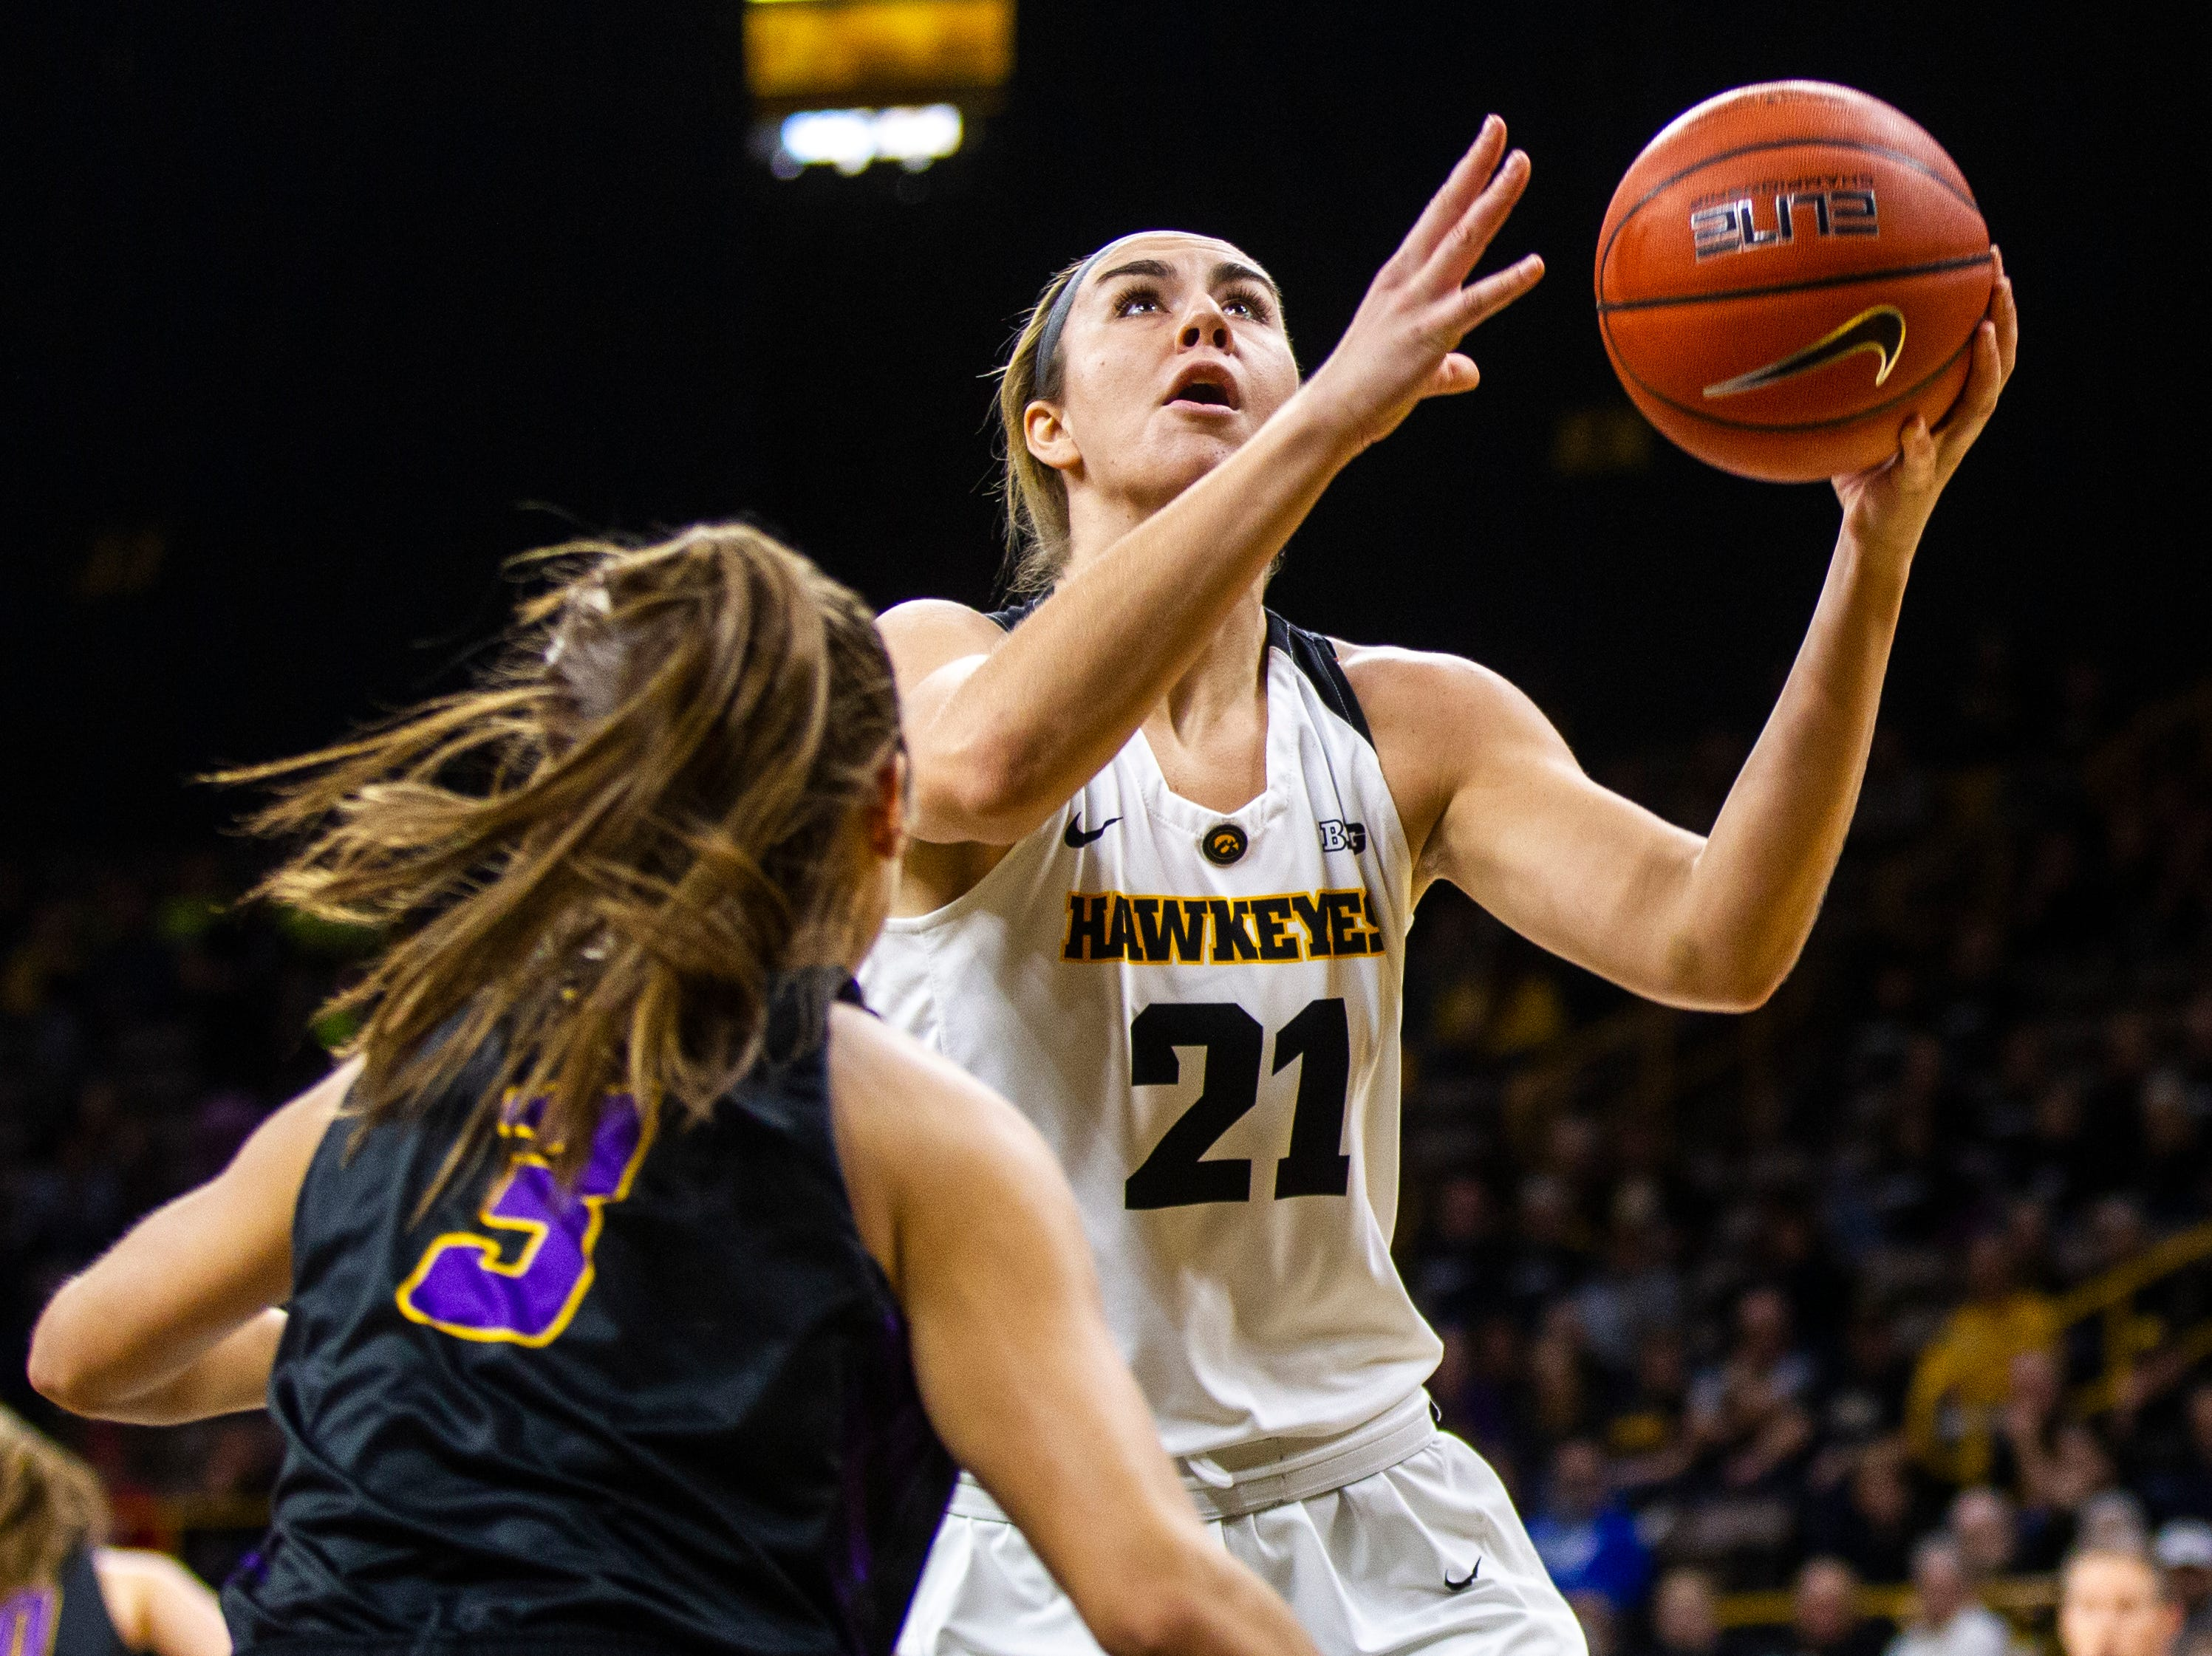 Iowa forward Hannah Stewart (21) attempts a basket during a NCAA women's basketball game on Sunday, Dec. 16, 2018, at Carver-Hawkeye Arena in Iowa City.